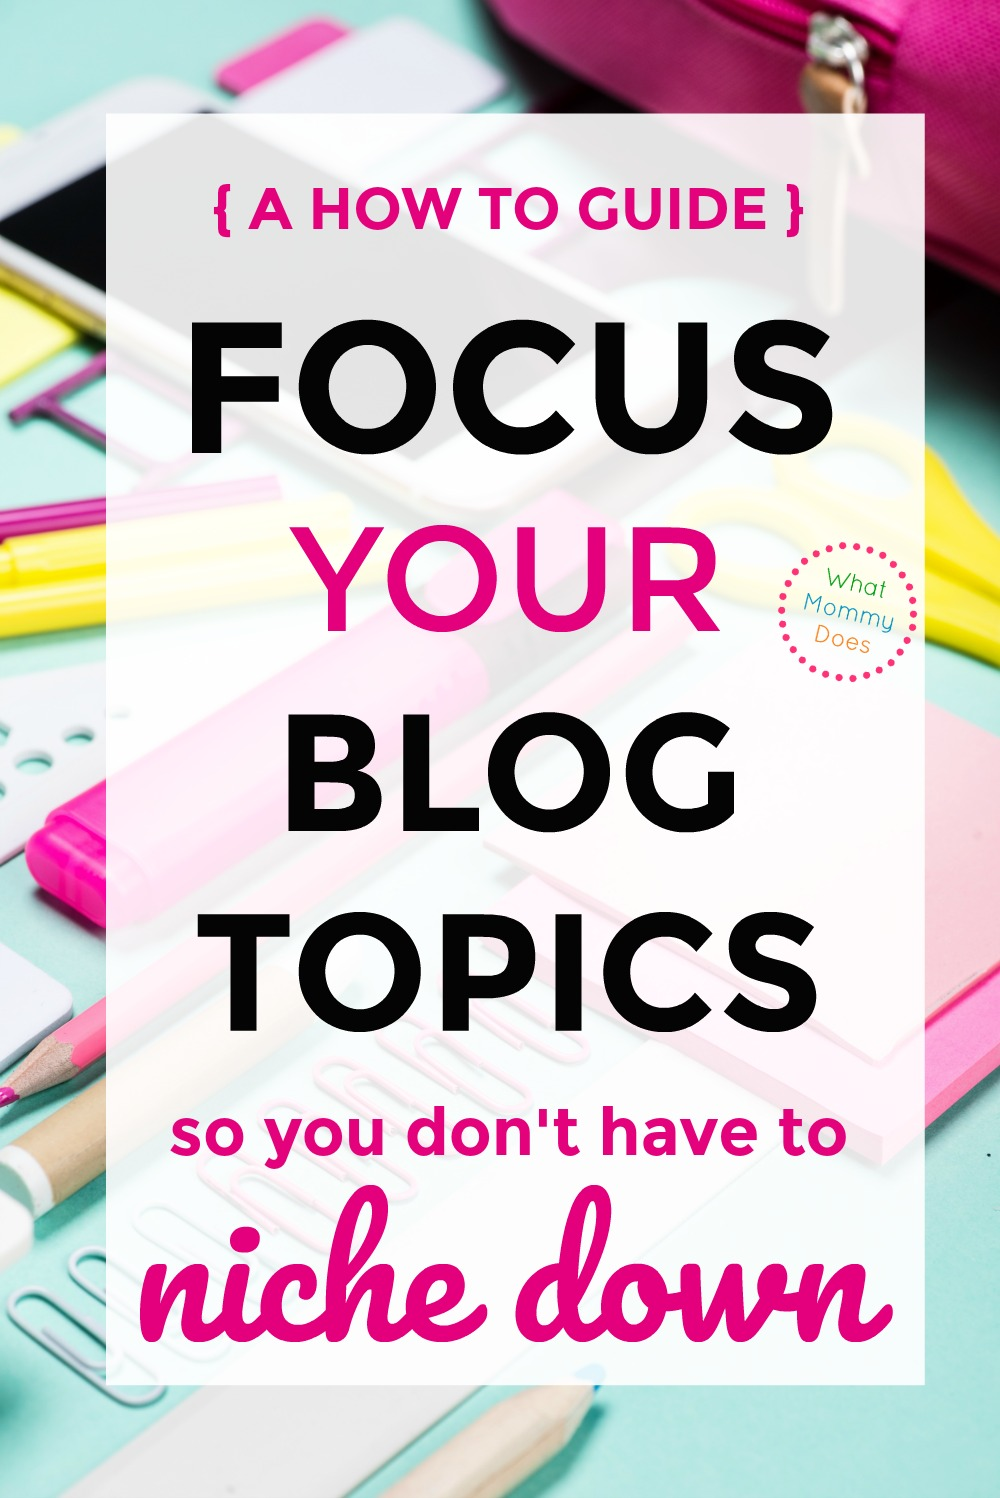 When I started my blog, I couldn't pin down what my primary passion was. I wanted to write about all kinds of topics on my blog. I FINALLY figured out how to stay true to myself + for my blog to be a reflection of all my passions, not just one of them. This guide (not just for beginners, but experienced bloggers, too!) will show you how to properly plan + organize your blog so you can write about lots of things. | blog organization tips, blog planner ideas, how to start a blog to make money